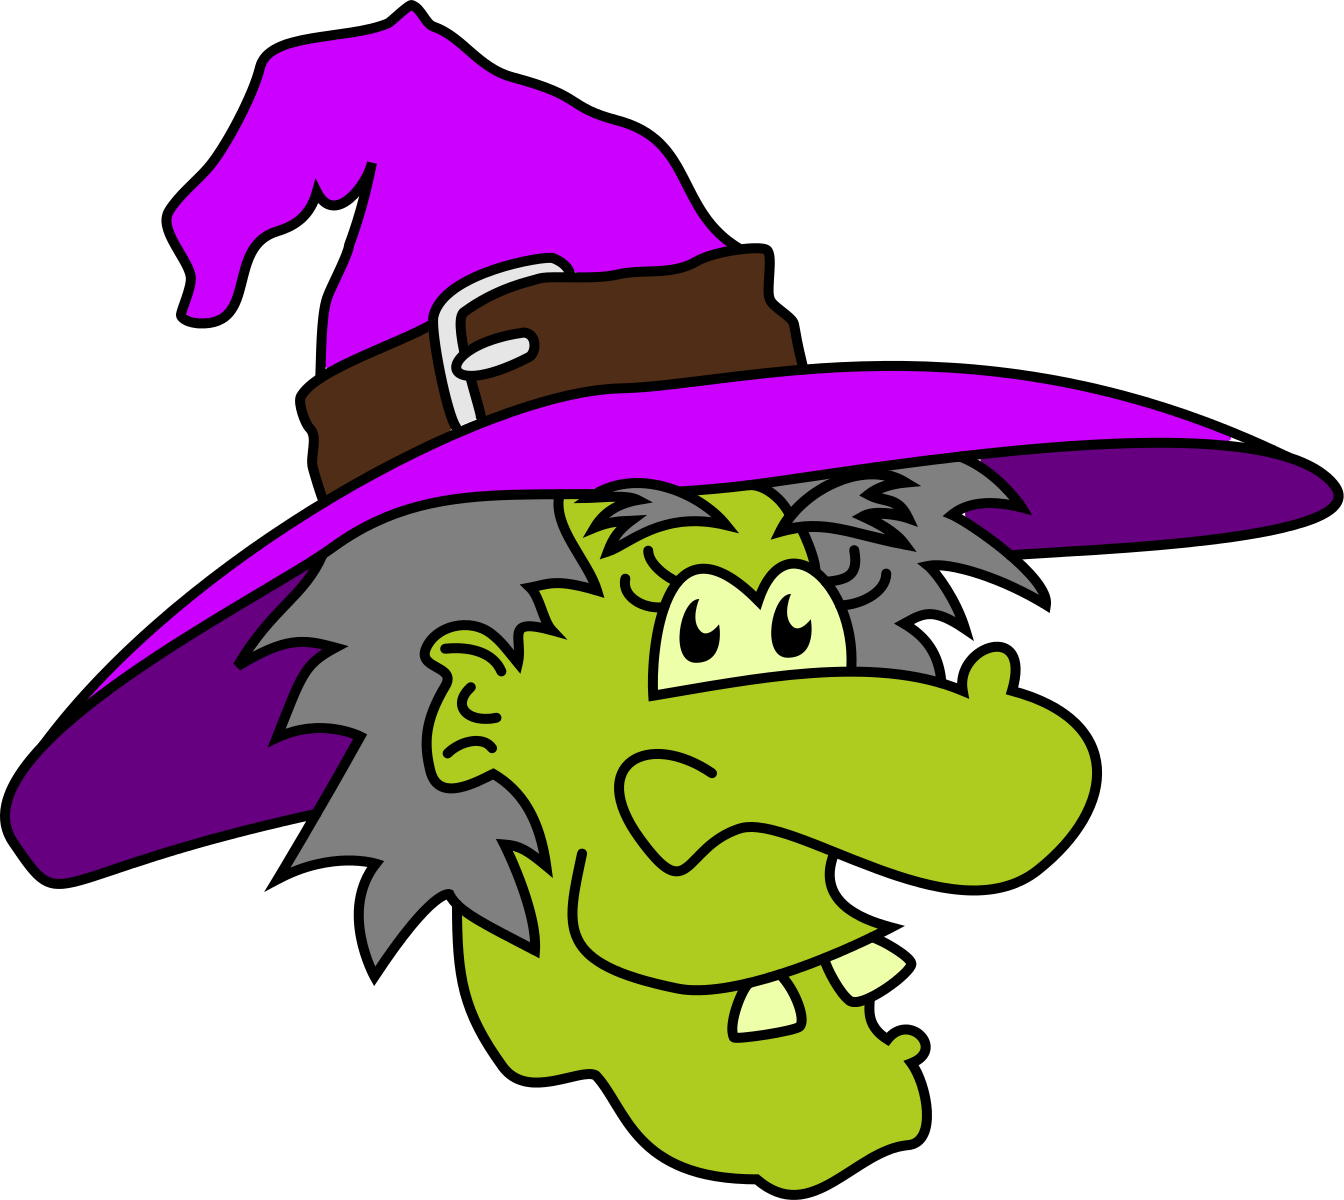 Witch clipart cute halloween character. Clip art